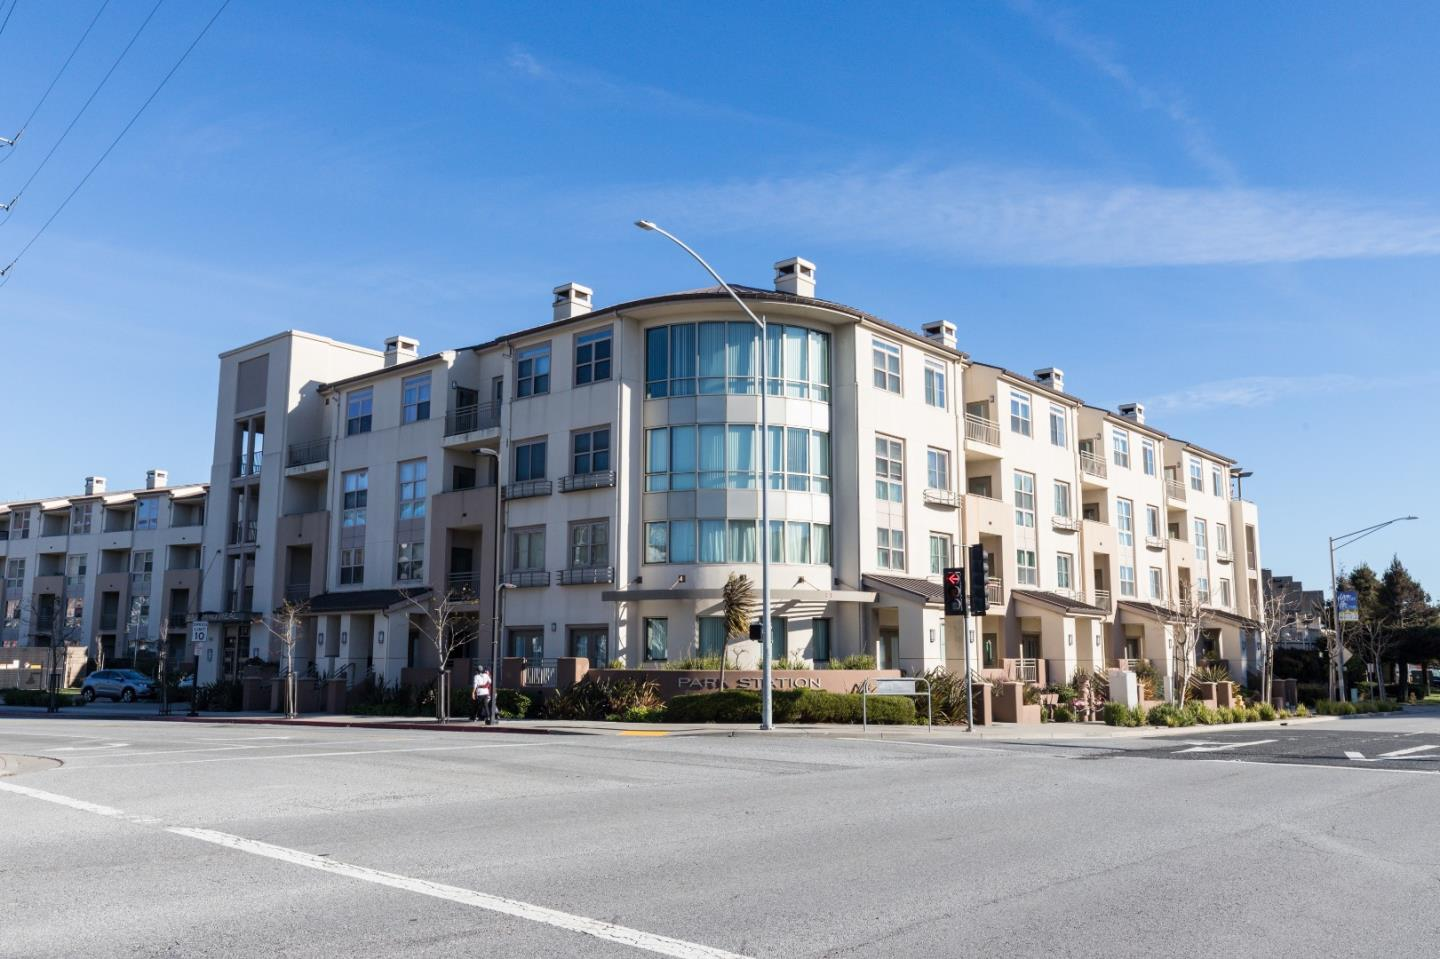 Image for 1488 El Camino Real 121, <br>South San Francisco 94080